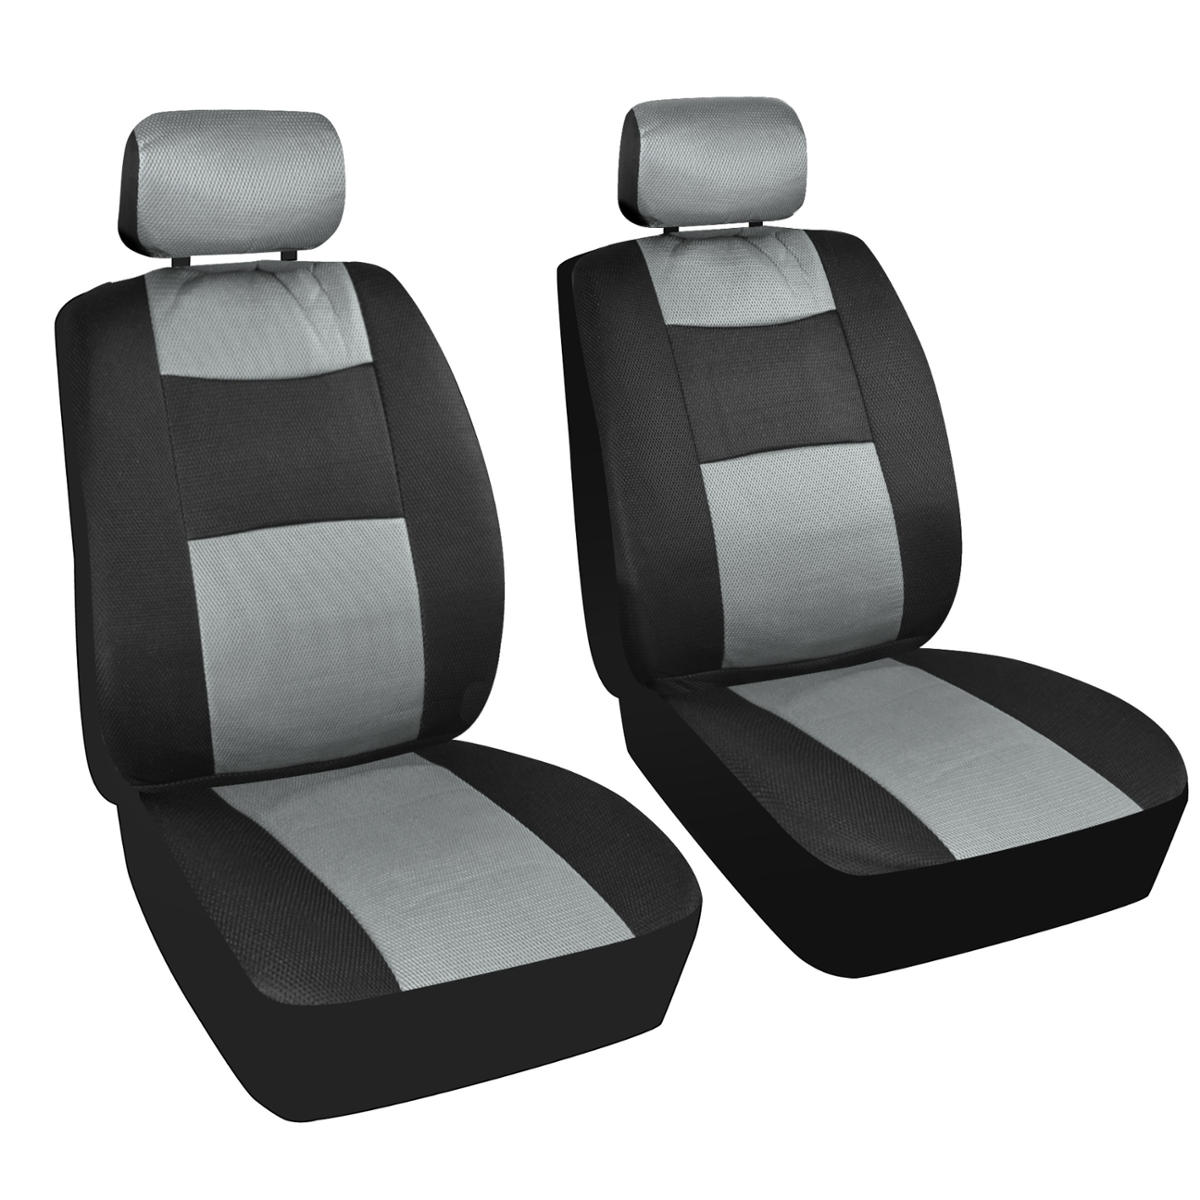 Truck Seat Covers Custom Truck Seat Covers Online